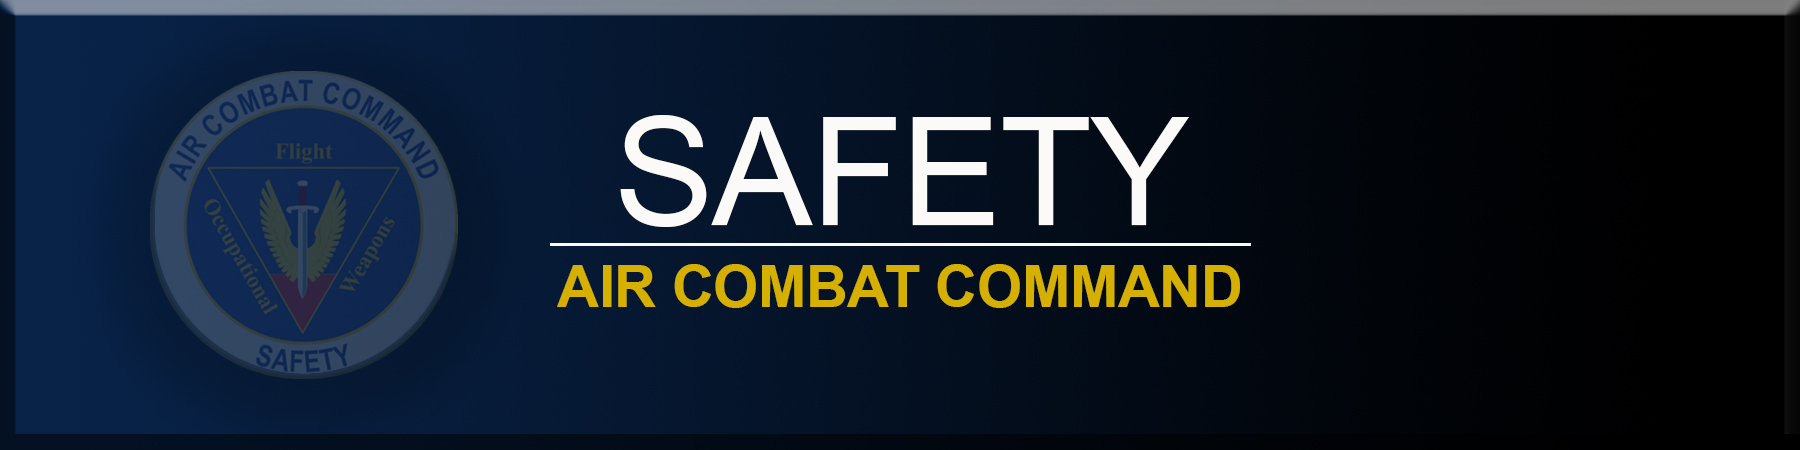 Link to Air Combat Command Safety